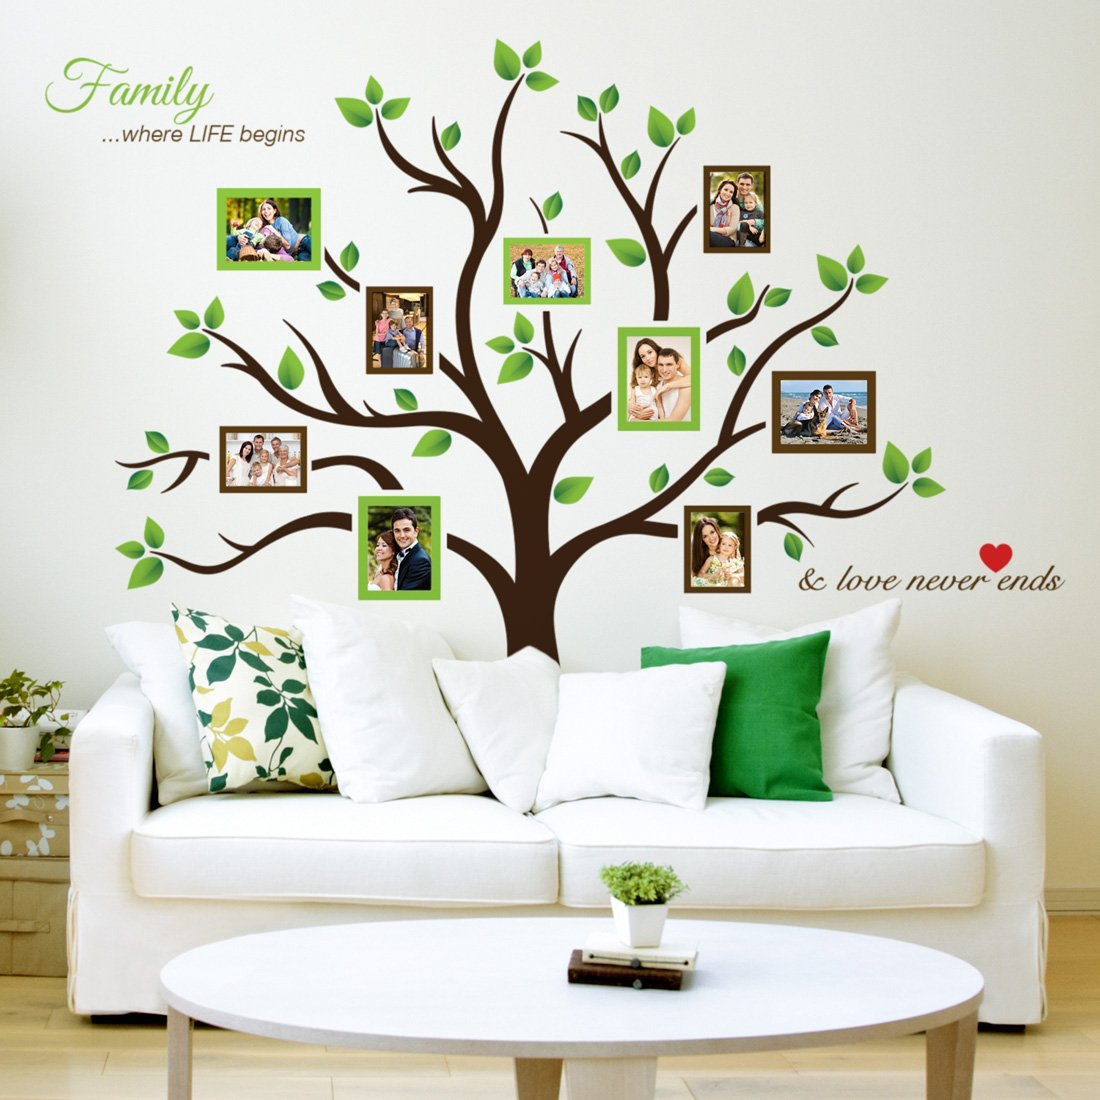 Amazon.com : Sweet Memories Photo Frame Wall Decal Family Tree Photo ...